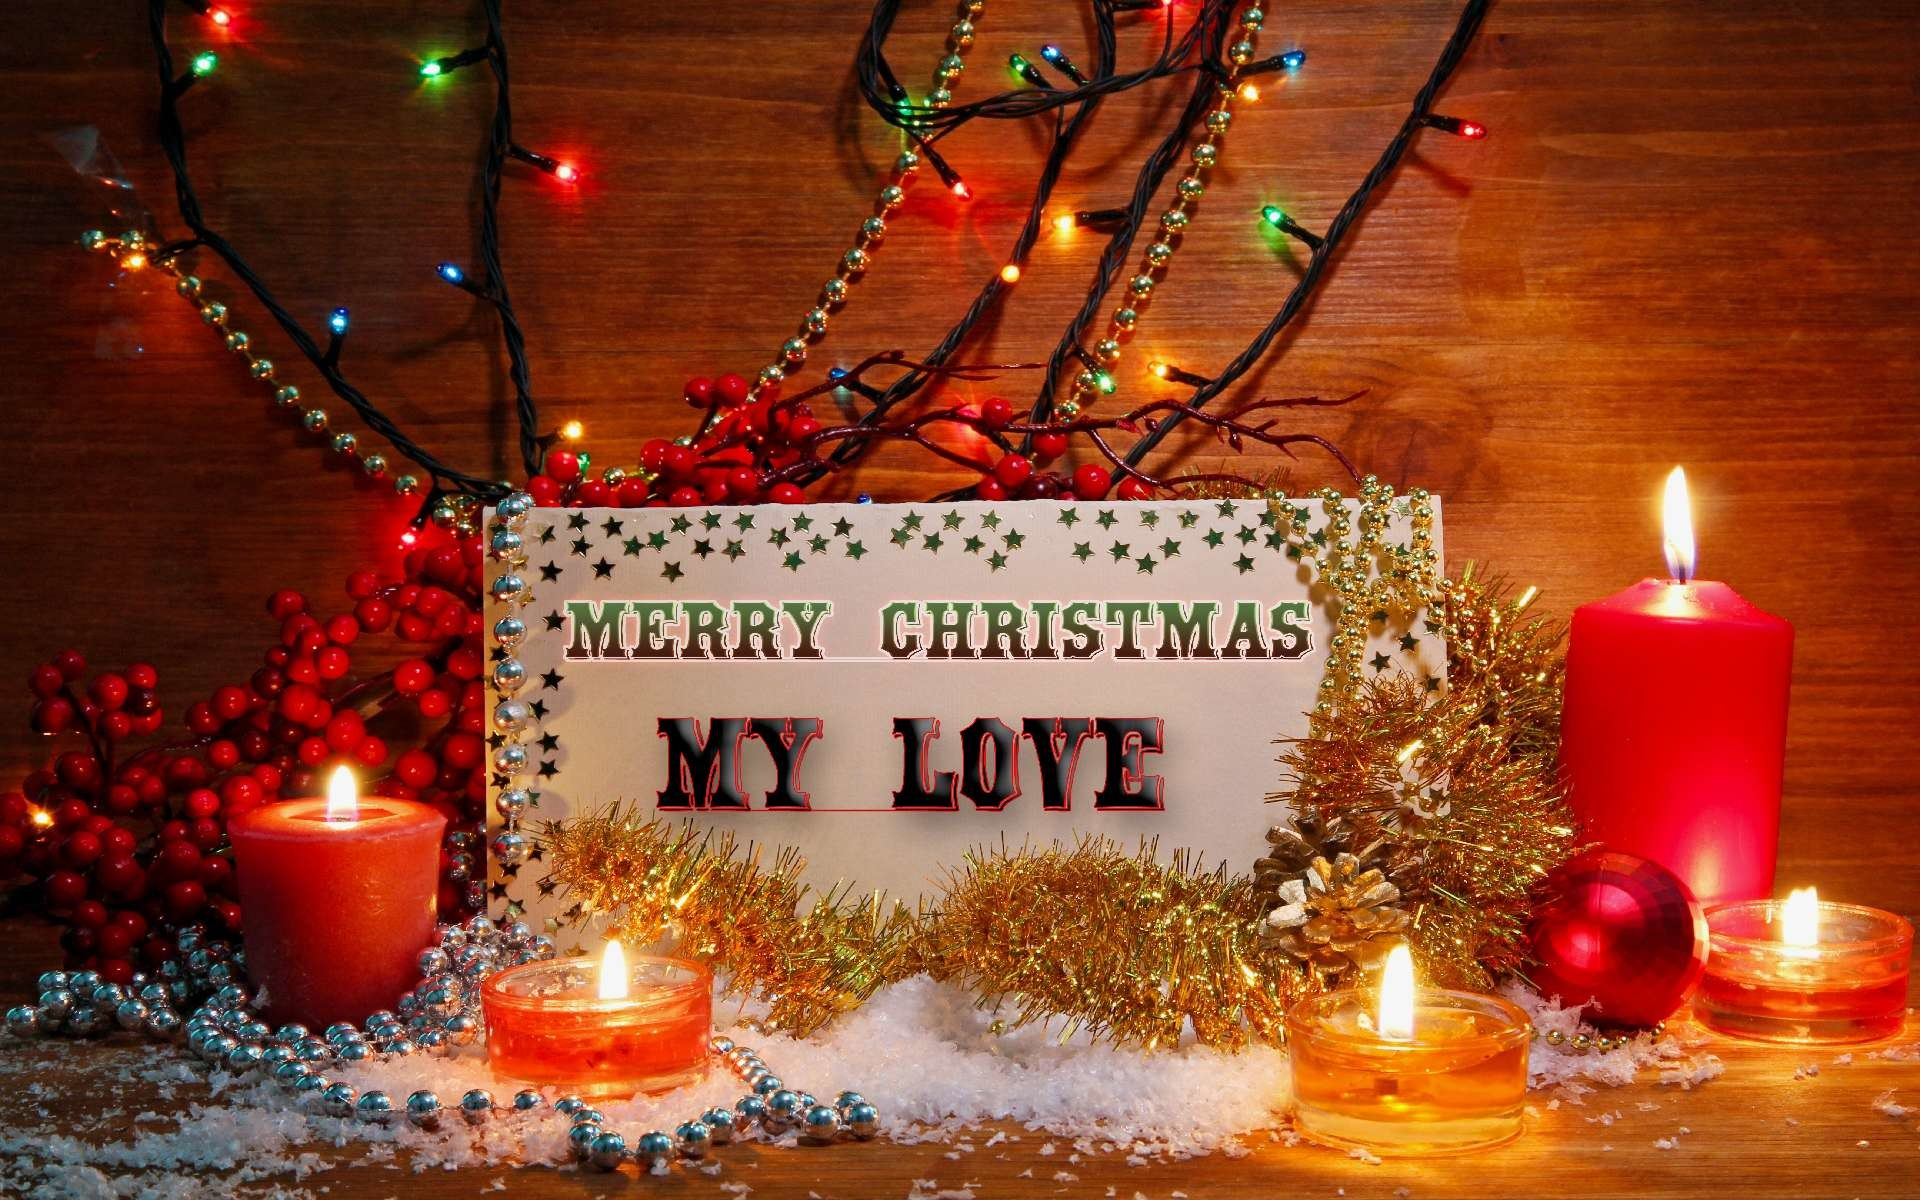 1920x1200 Merry Christmas My Love ,Pictures,Images,Photos,Wallpapers